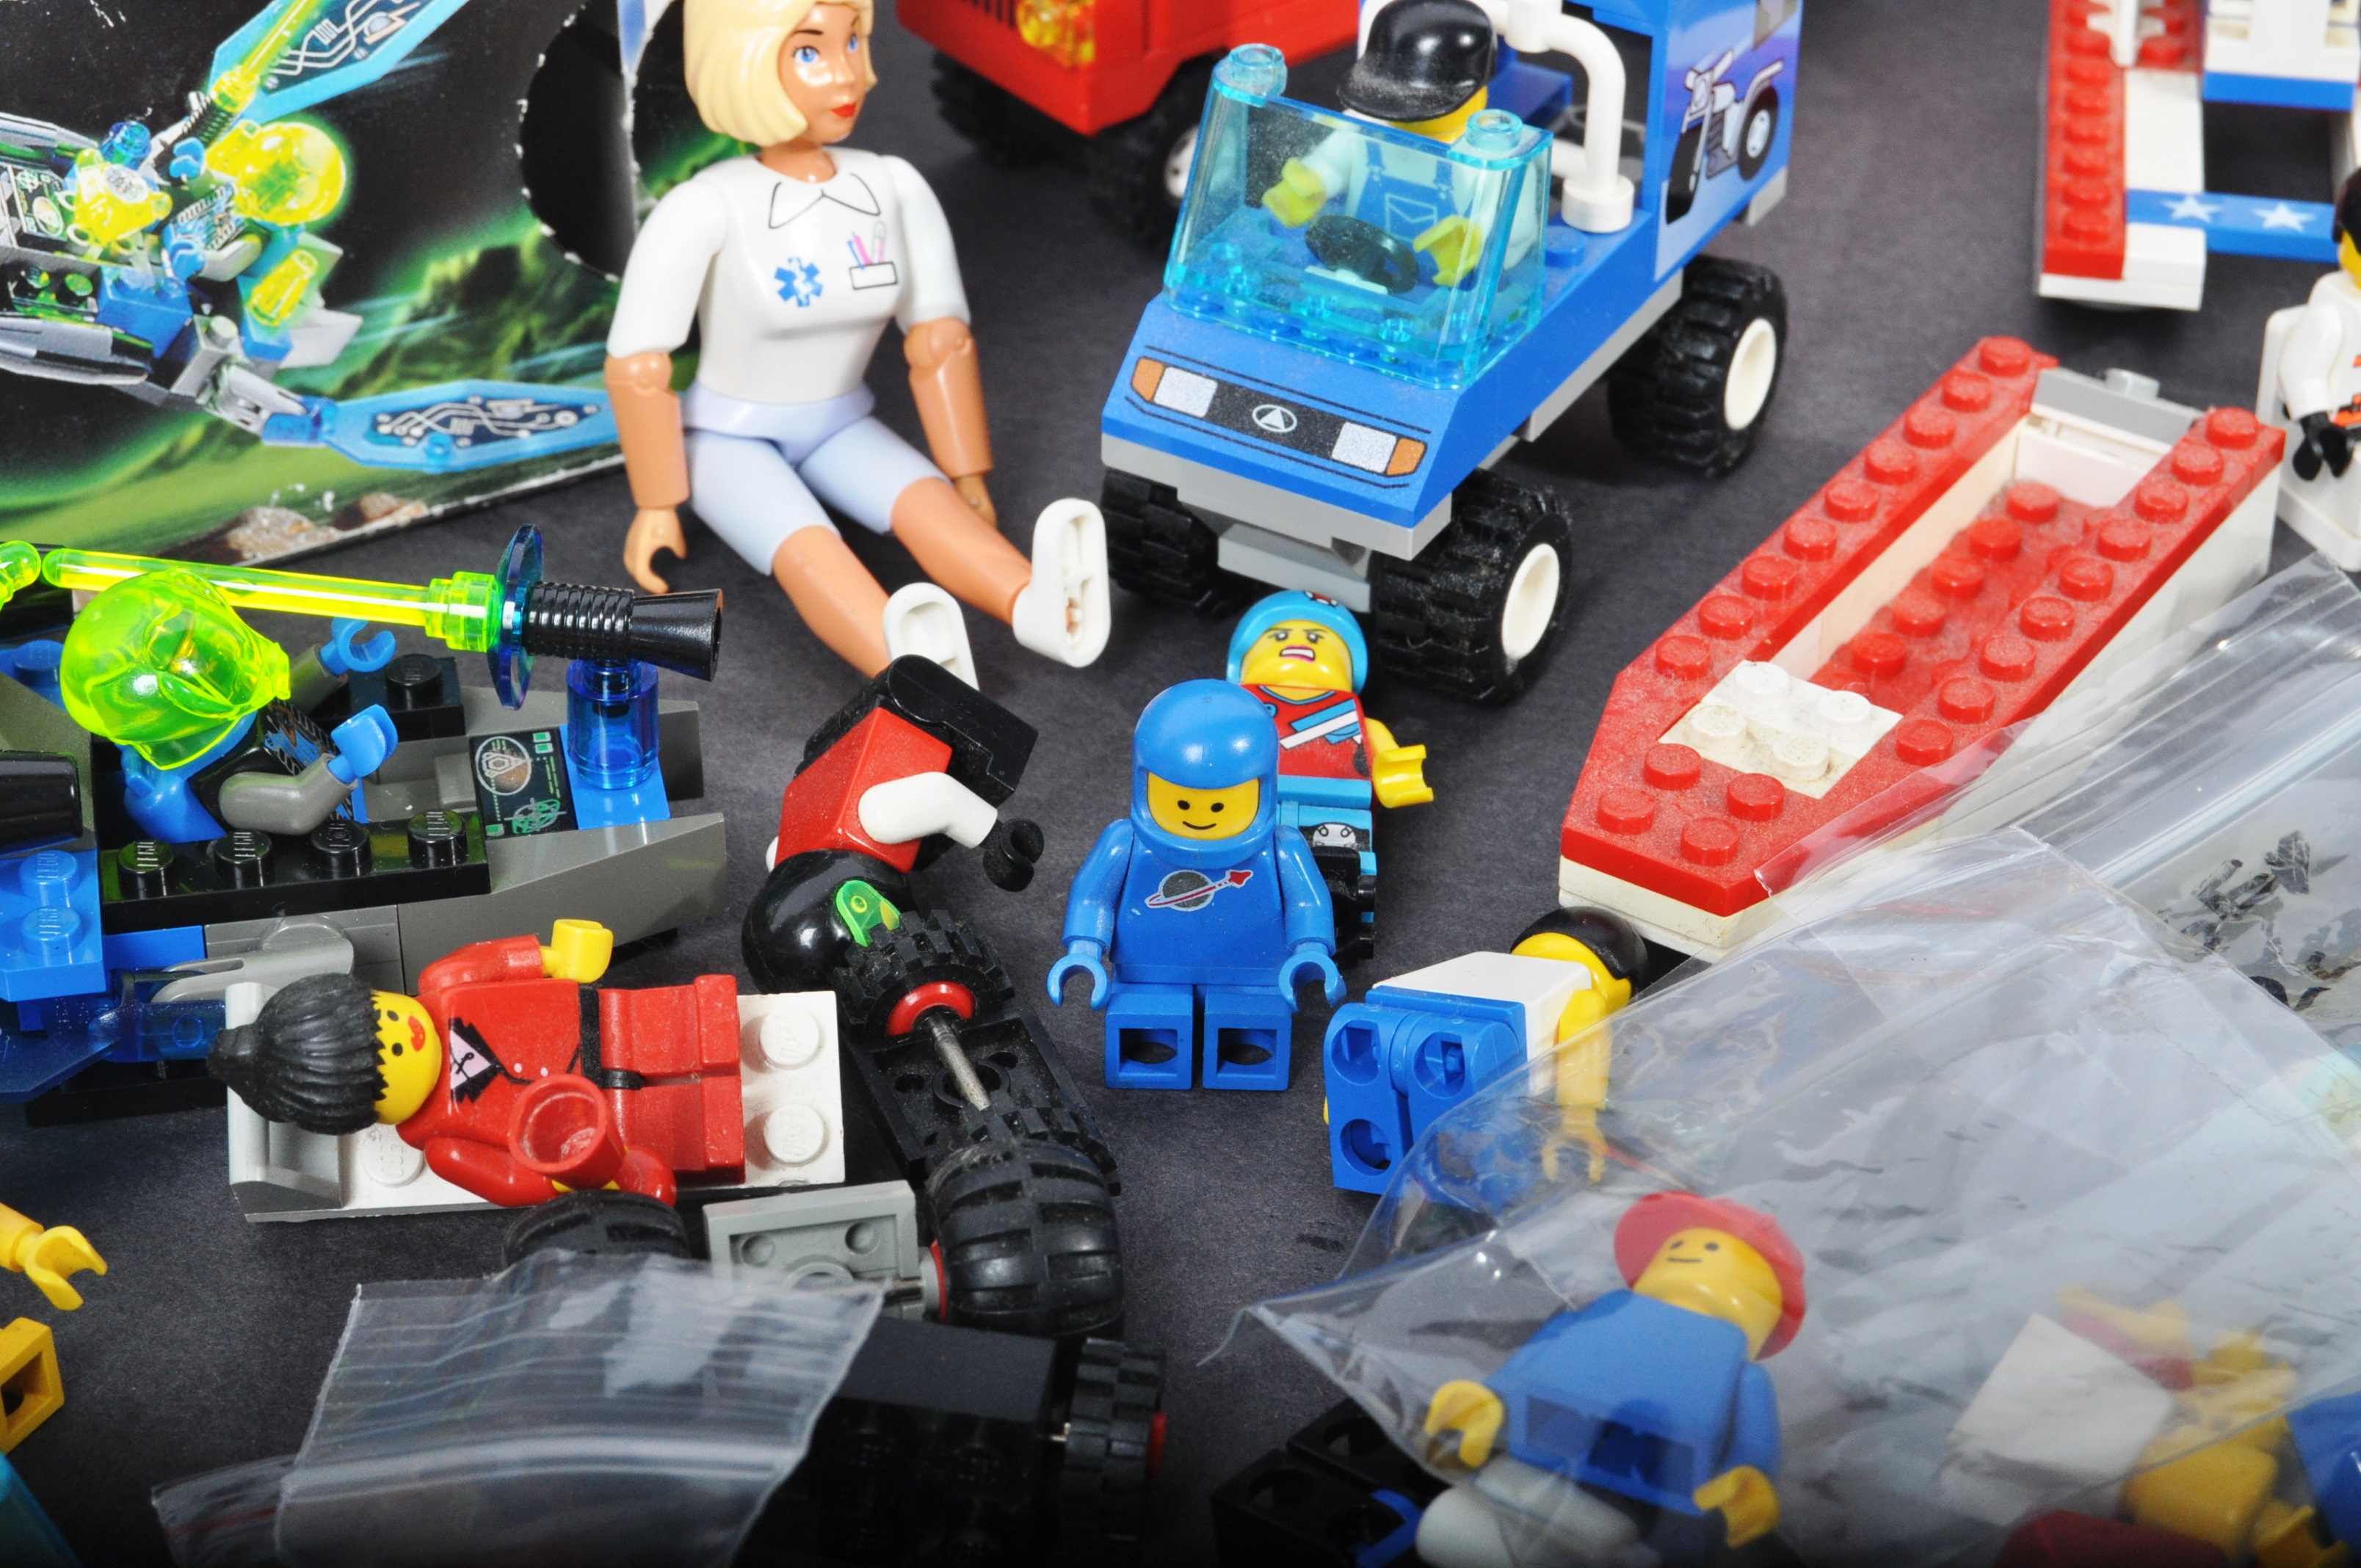 COLLECTION OF ASSORTED VINTAGE MINI LEGO SETS & MINIFIGURES - Image 9 of 10